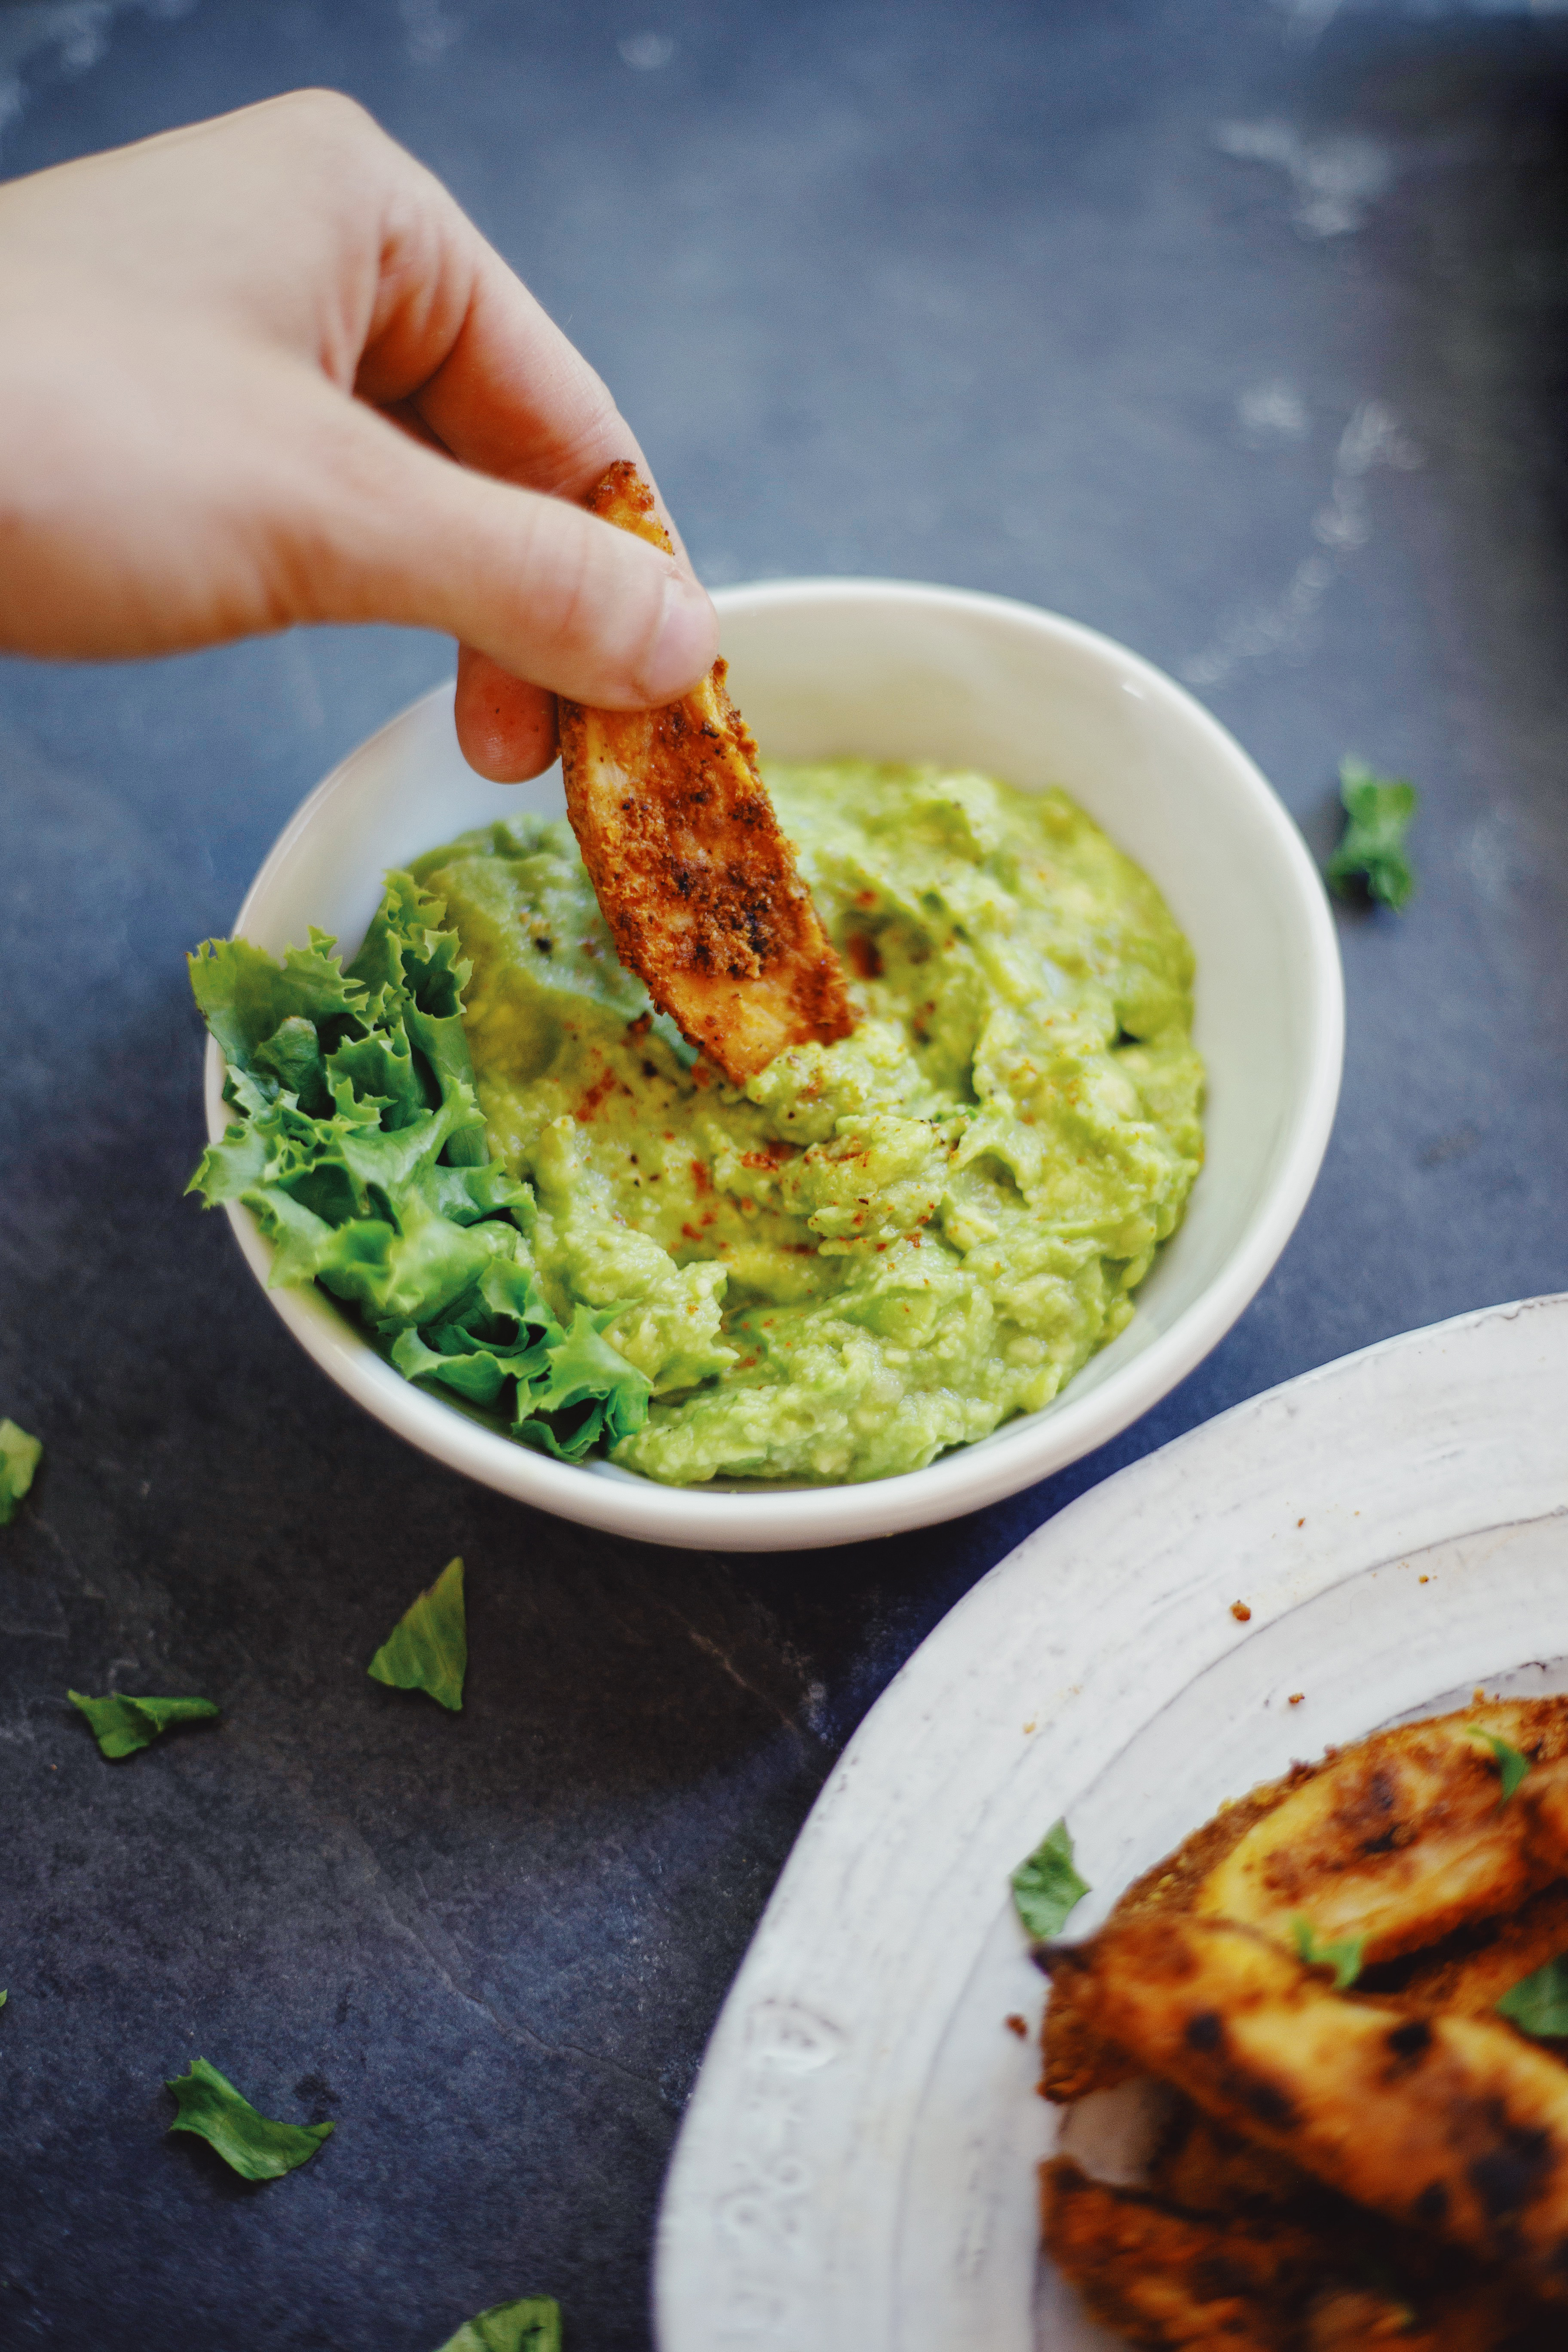 Garlicky Guac recipe by The Local Sprout